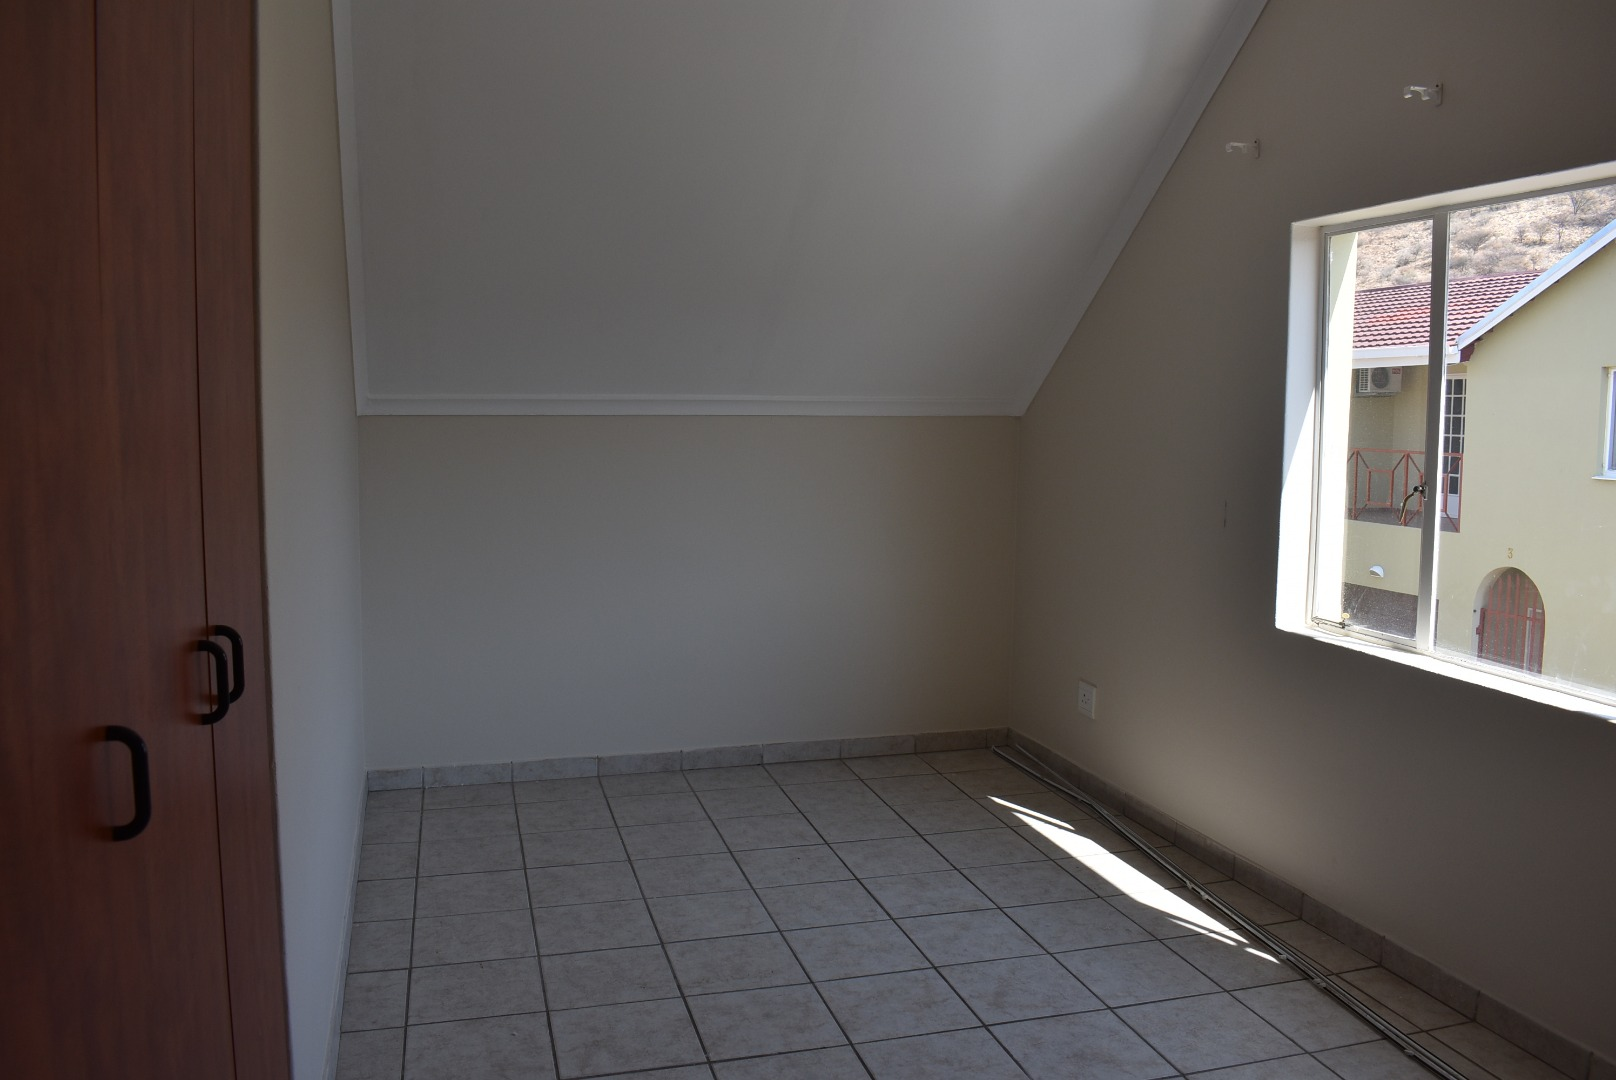 3 Bedroom Townhouse For Sale in Avis